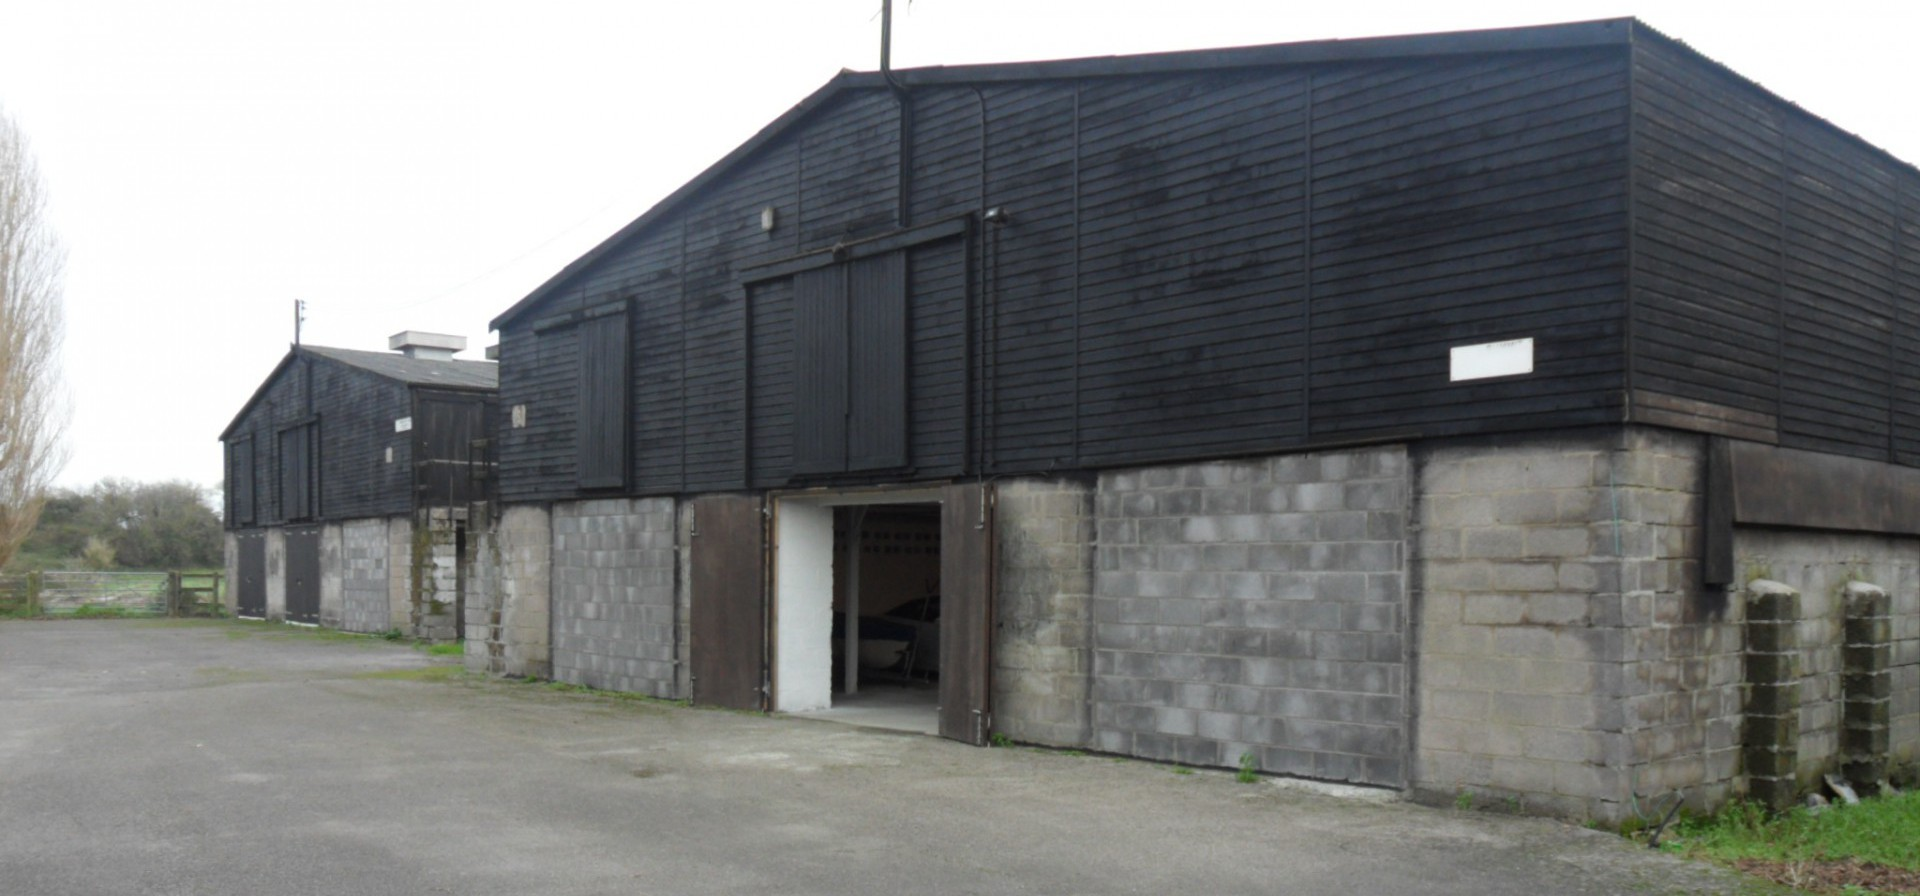 Industrial / Storage Units to Rent